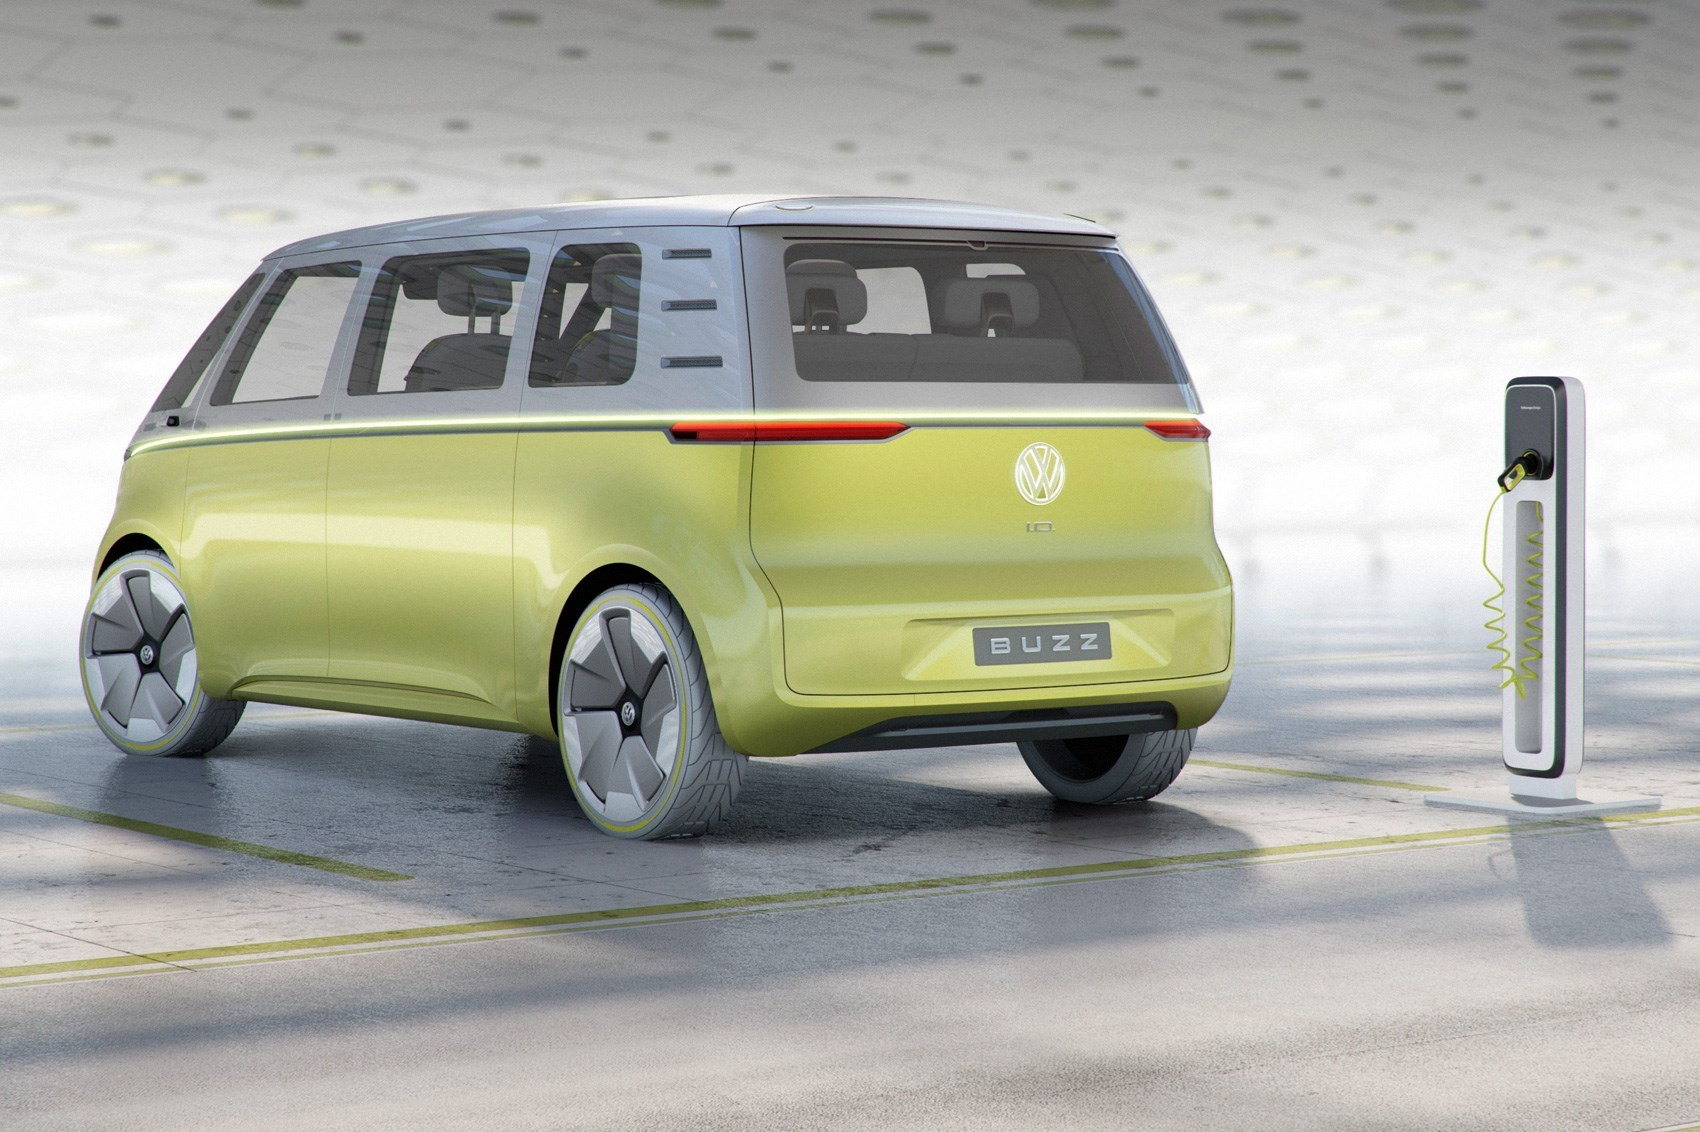 The 2017 Vw Id Buzz Concept Car